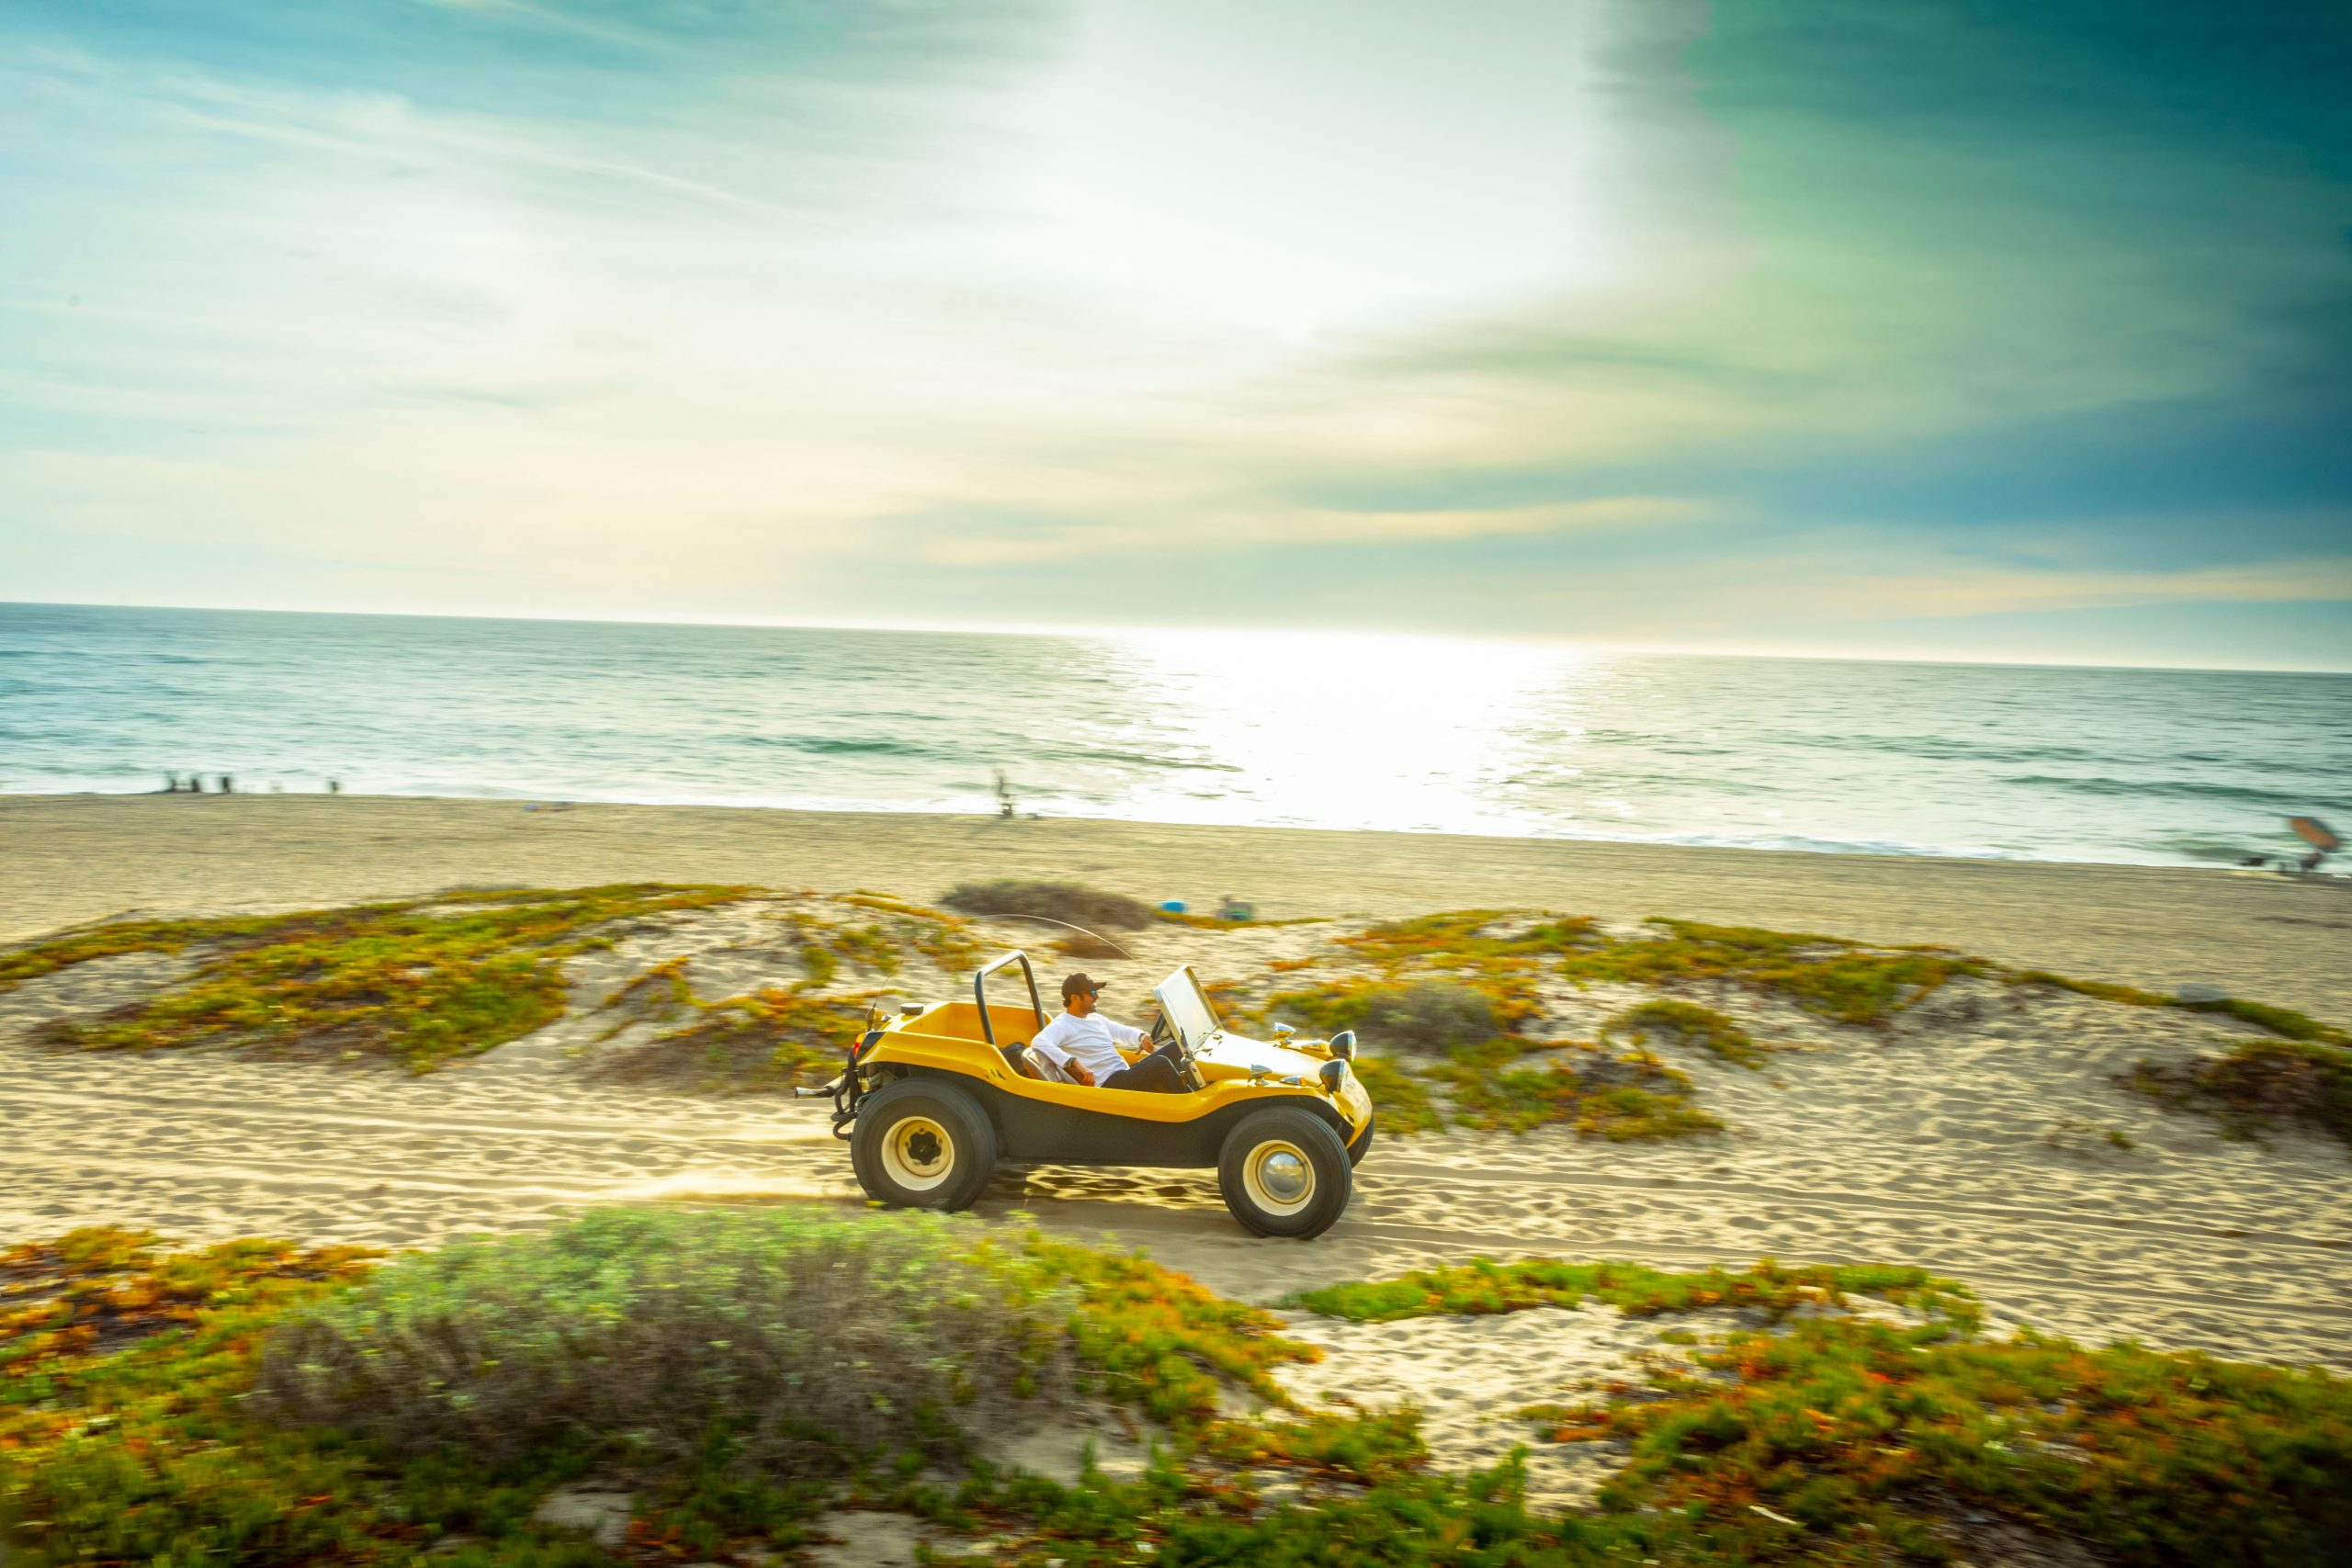 Life's a beach: The new generation taking on Bruce Meyer's dune buggy